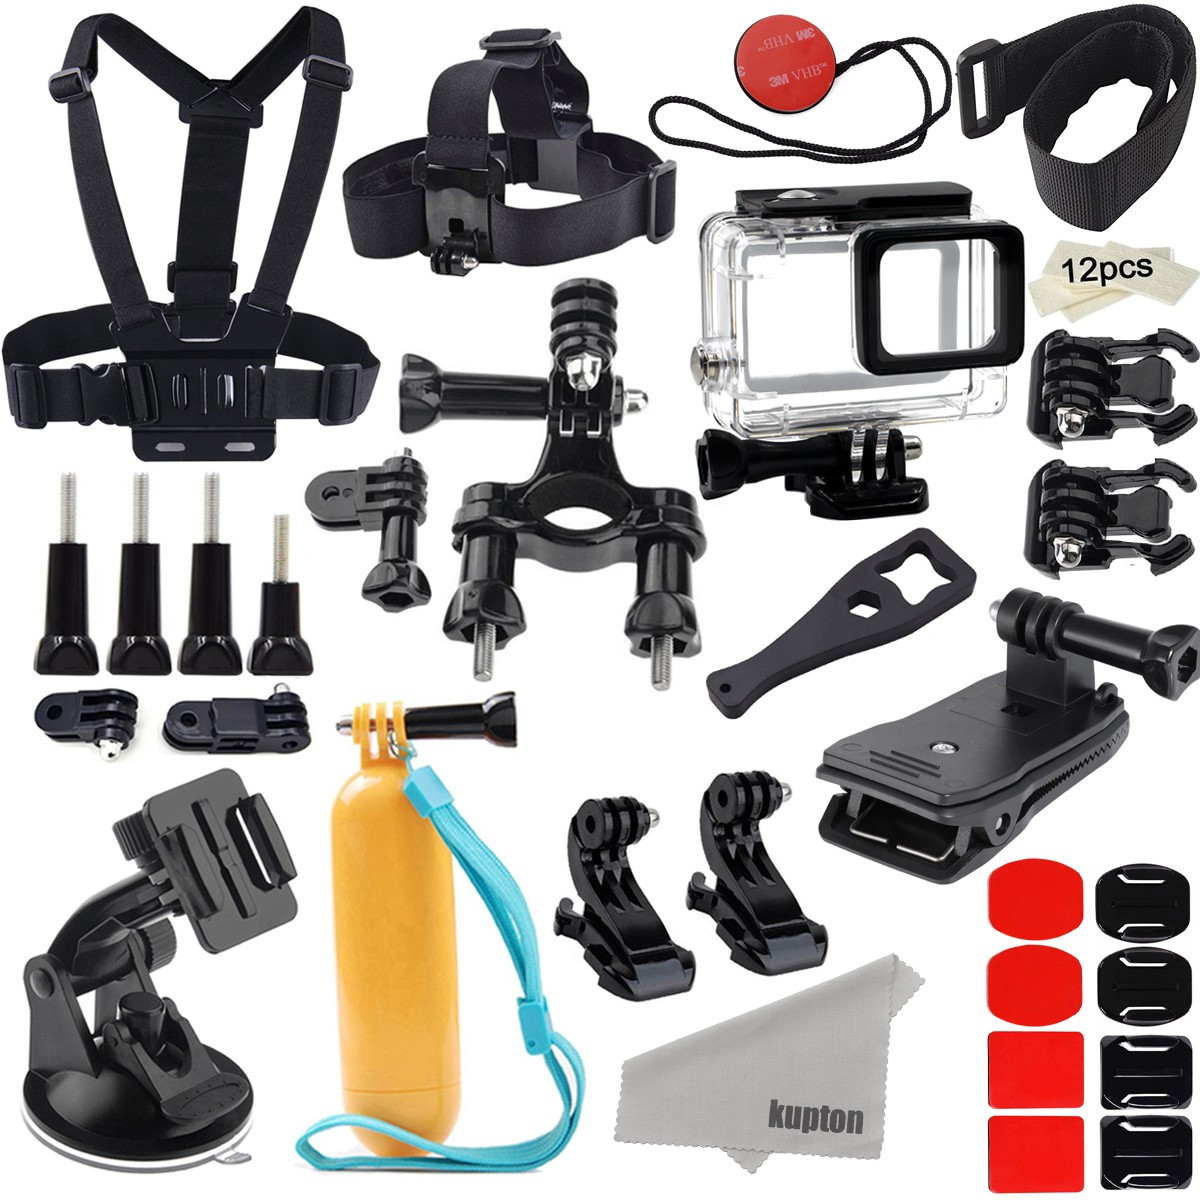 Kupton Accessories for GoPro Hero 7 Black/ Hero 6/ Hero 5/ Hero 2018 Action Camera Include Waterproof Housing Case Chest Head Strap Bike Car Mount Floating Grip Bundle Set Kit for Go Pro Hero 7 6 5